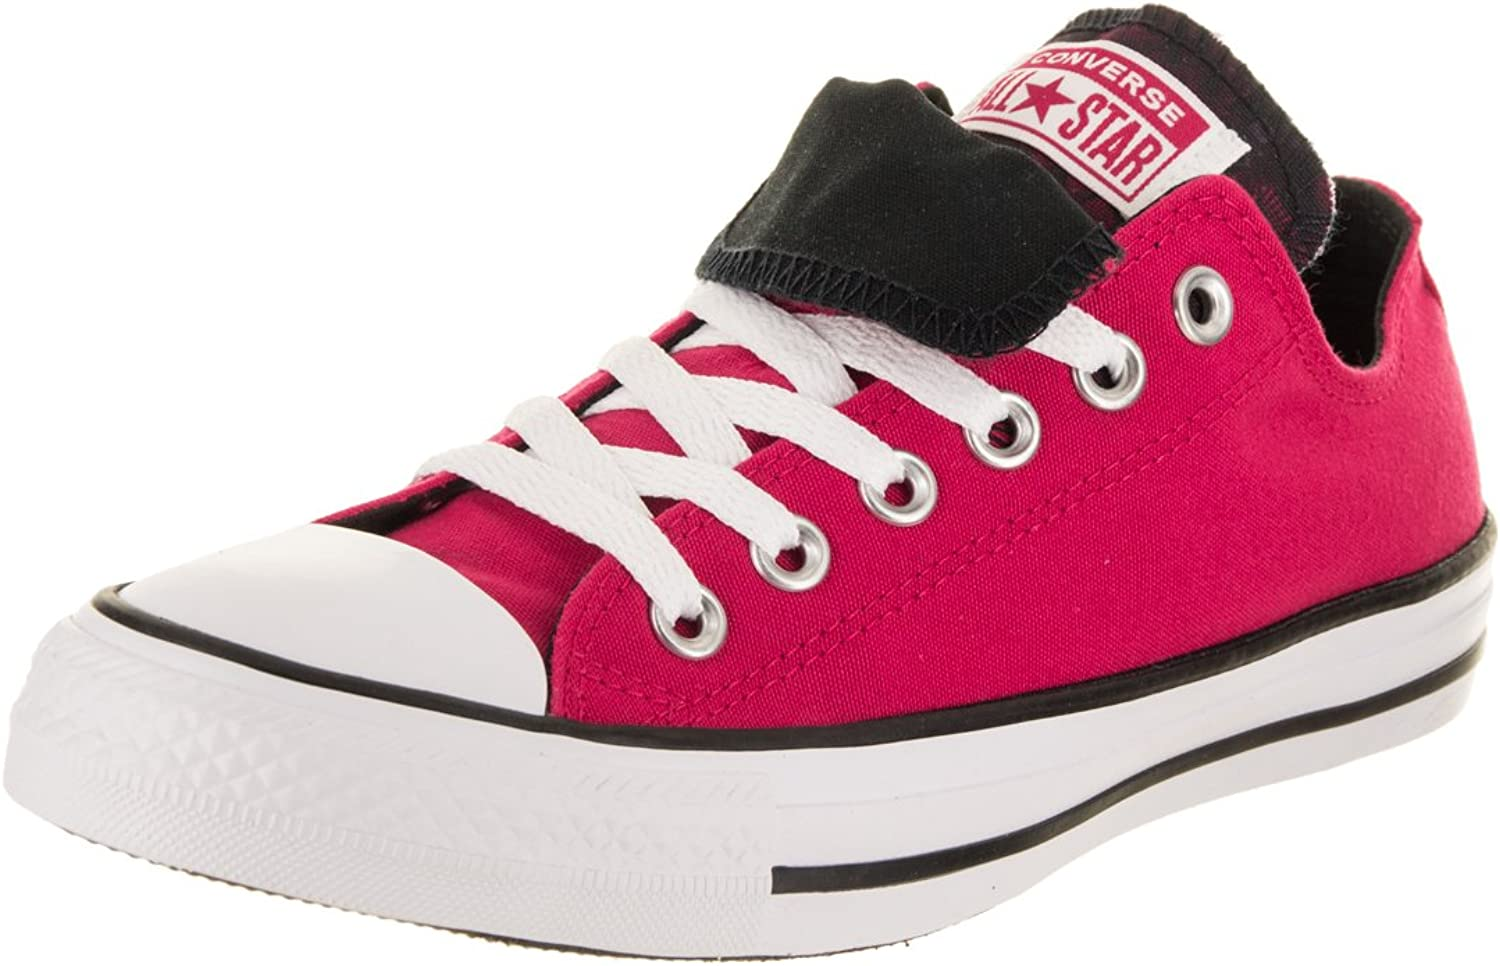 Converse Women's Chuck Taylor All Star Double Tongue Ox Casual shoes